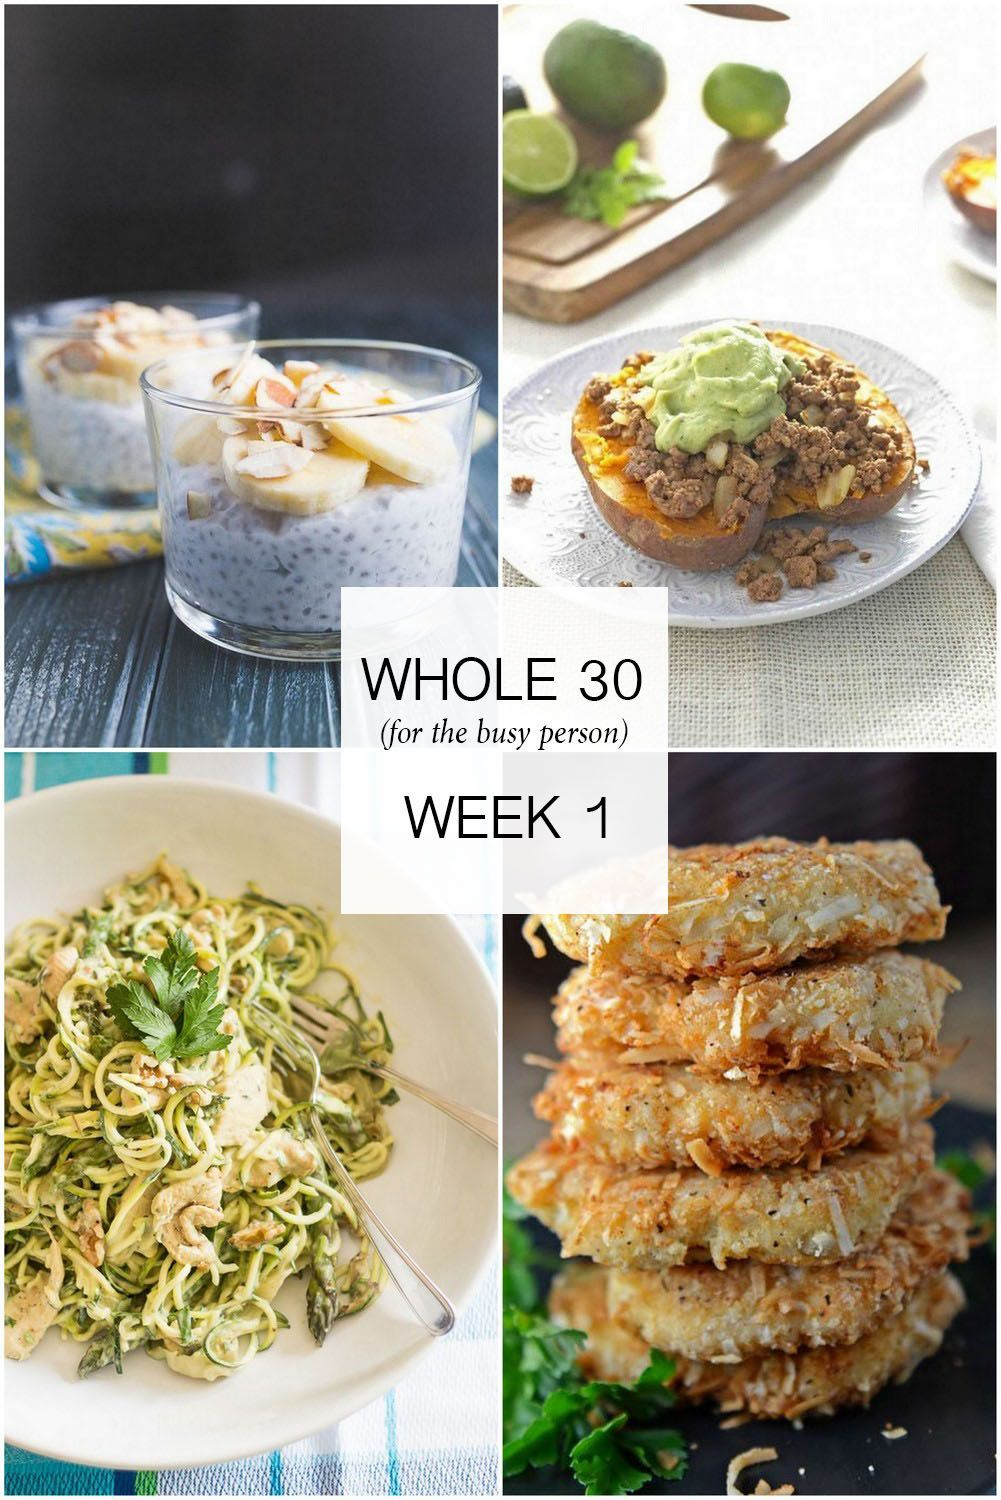 Easy Whole30 Meal Plan Week 1 — The Effortless Chic in